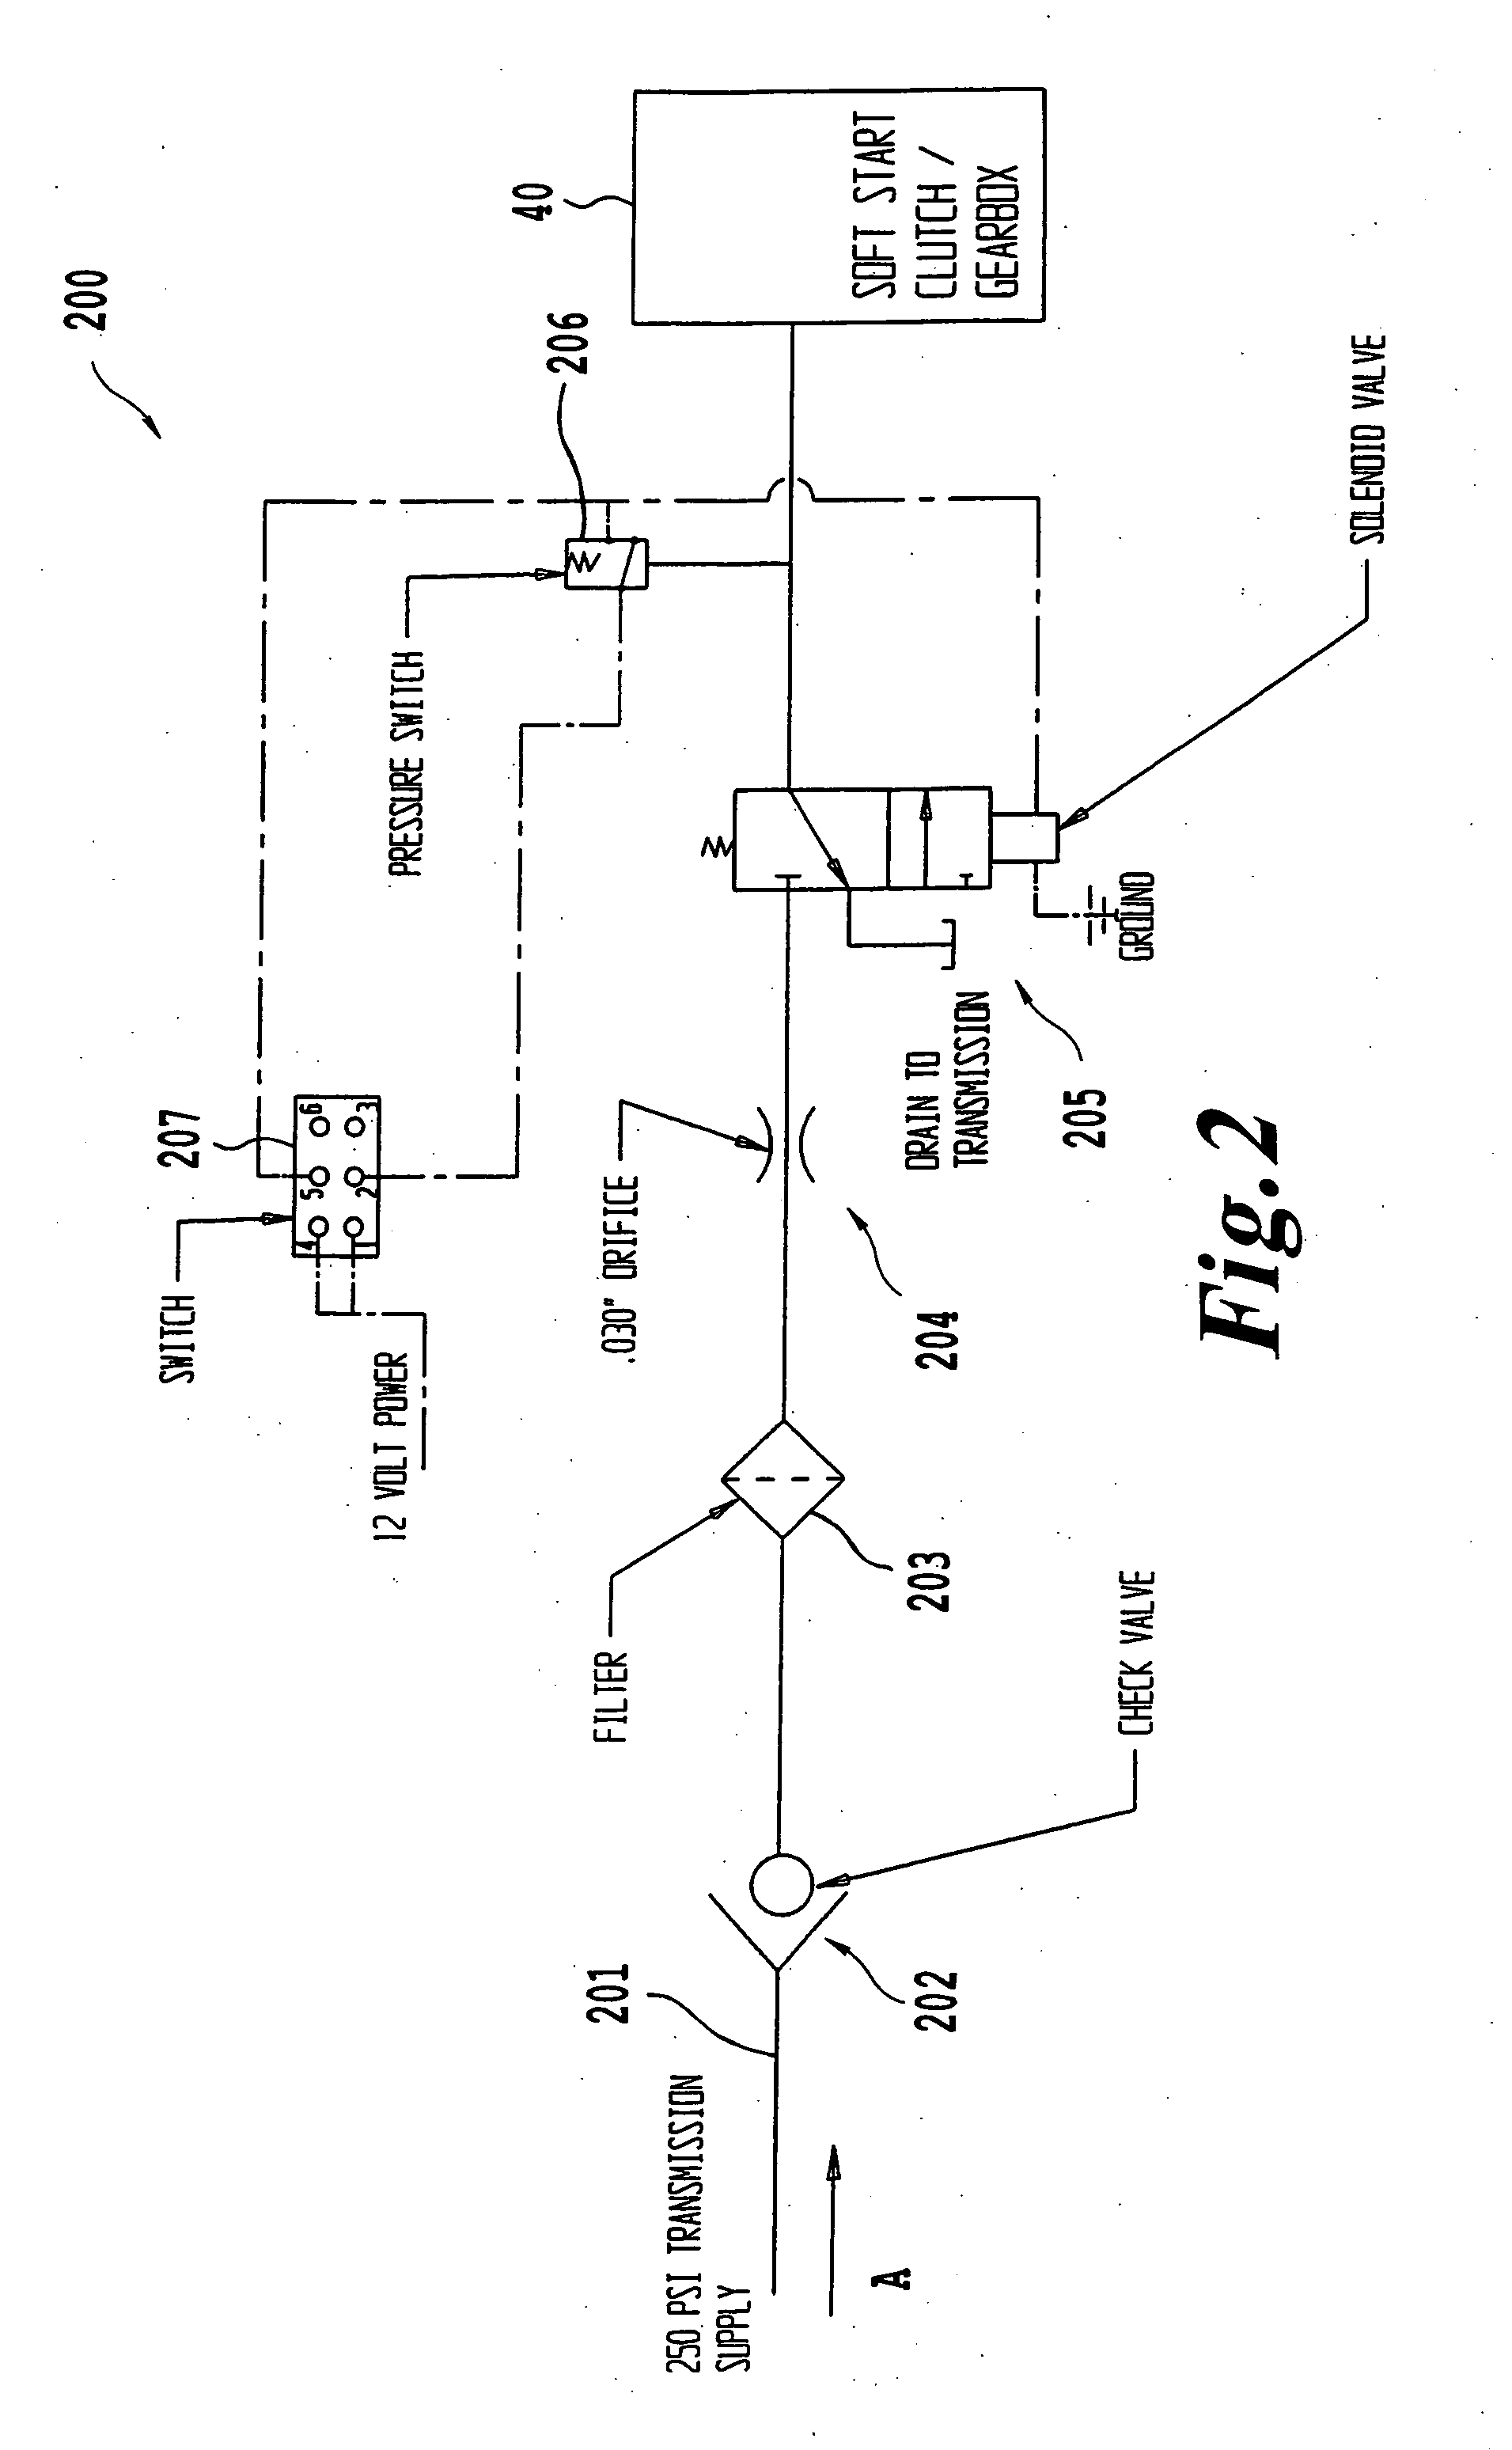 US20060214035A1 20060928 D00003 patent us20060214035 system and method of implementing a soft PTO Switch Wiring Diagram for Massey Furgeson at highcare.asia